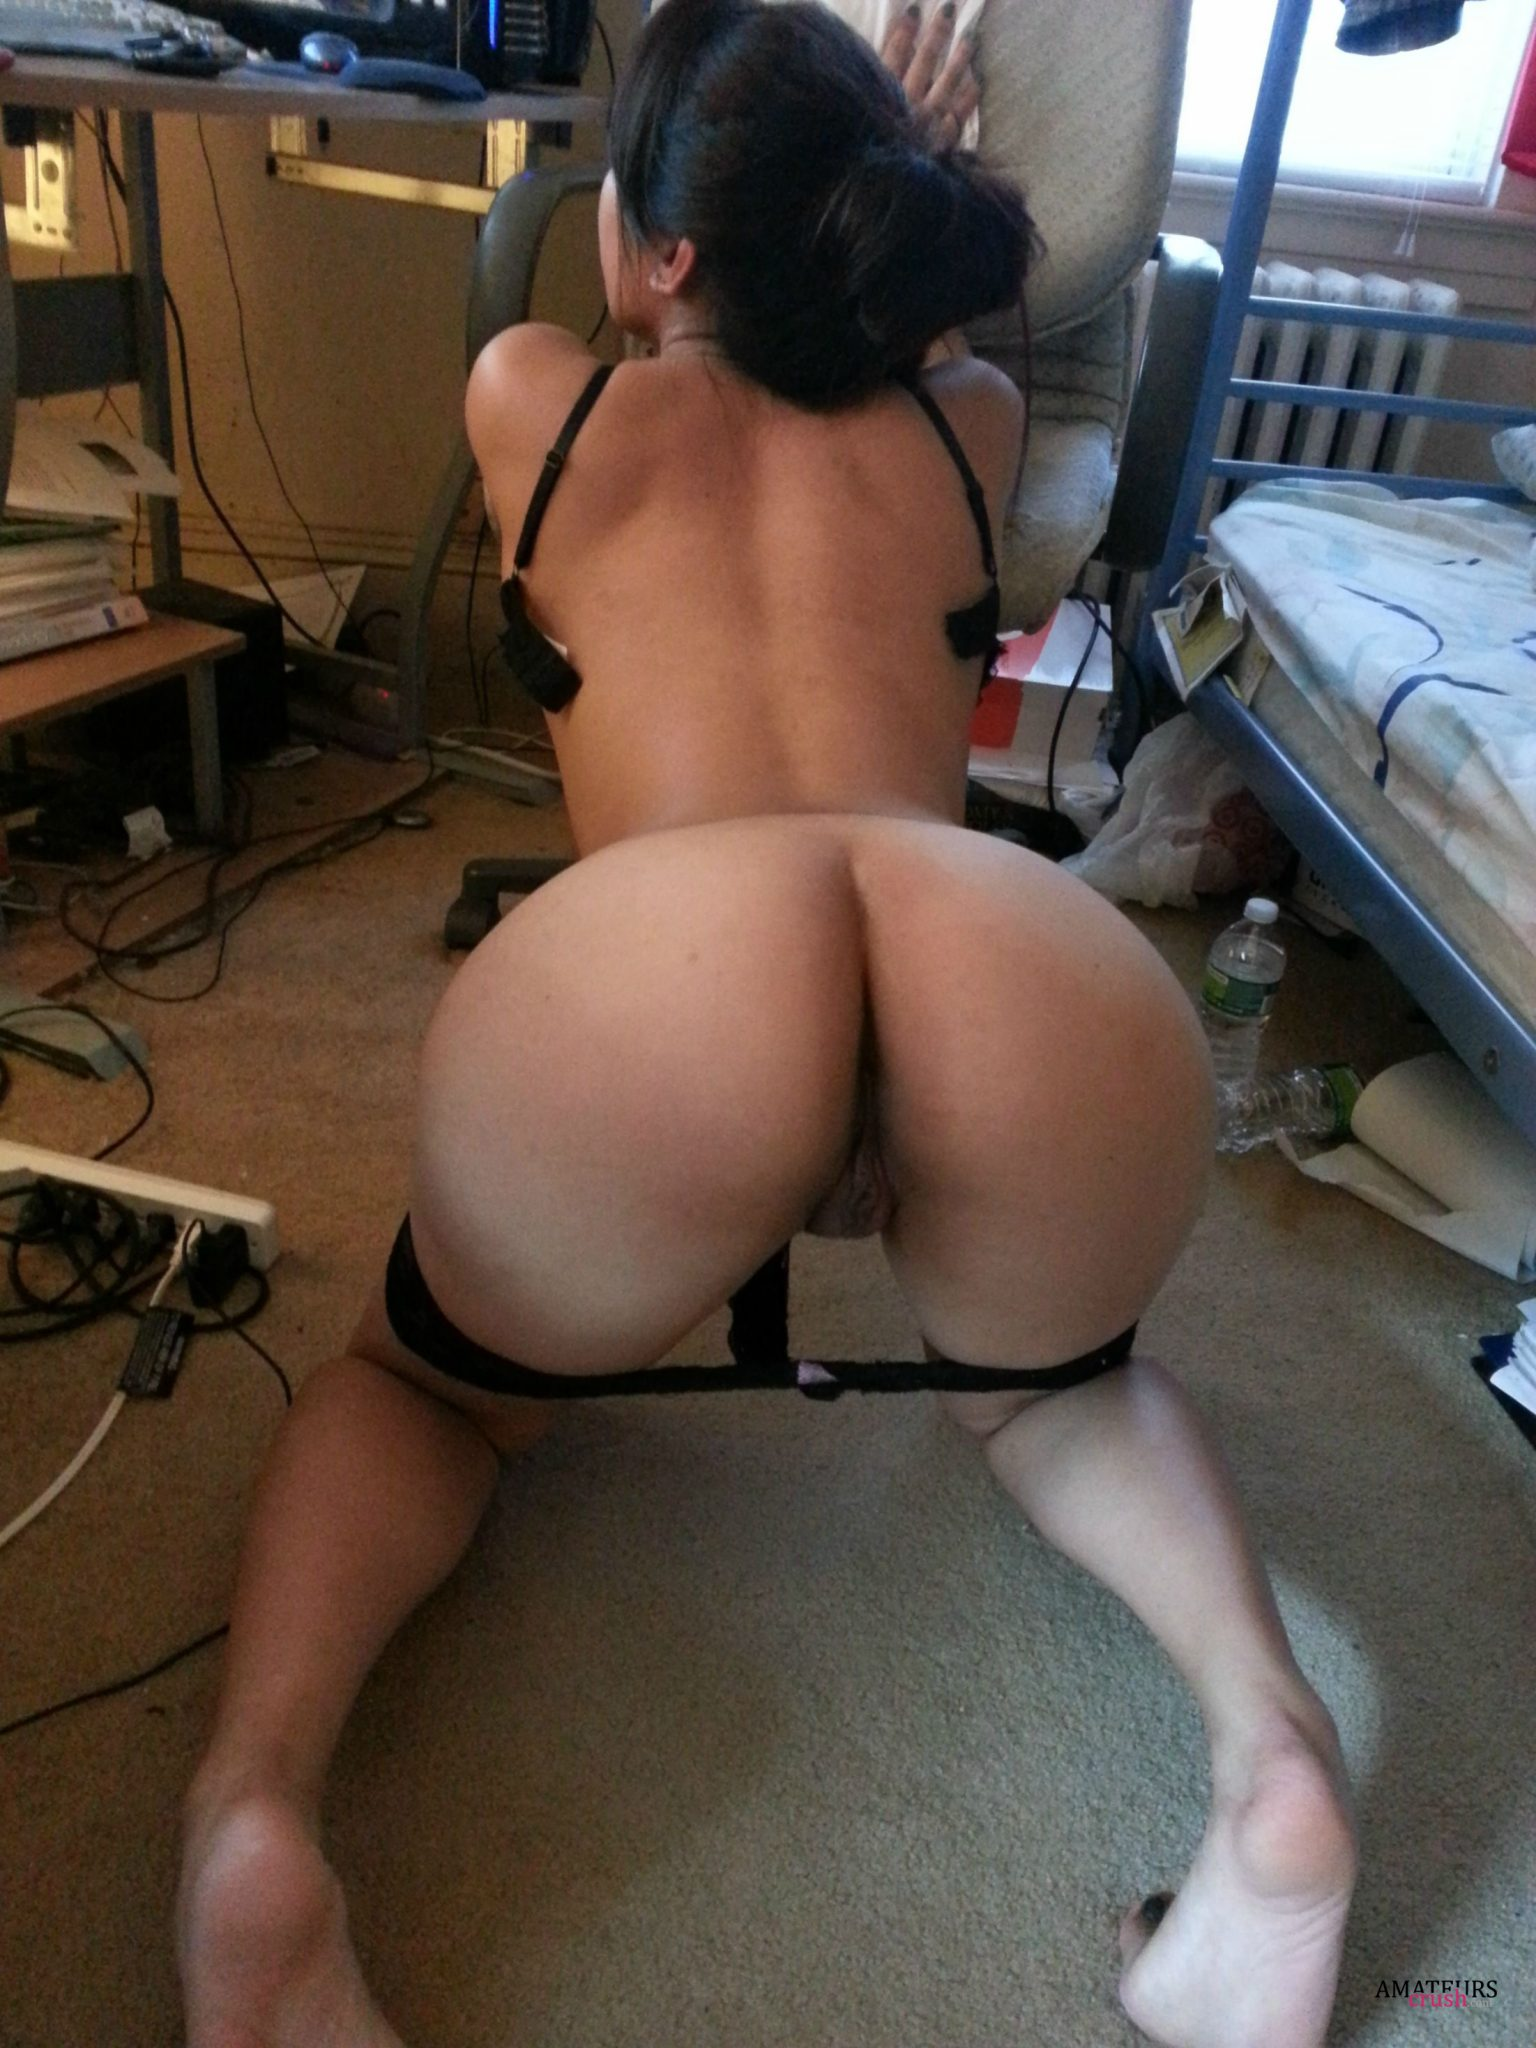 Girls Bent Over Collection - 41 Amazing Big Asses To ...